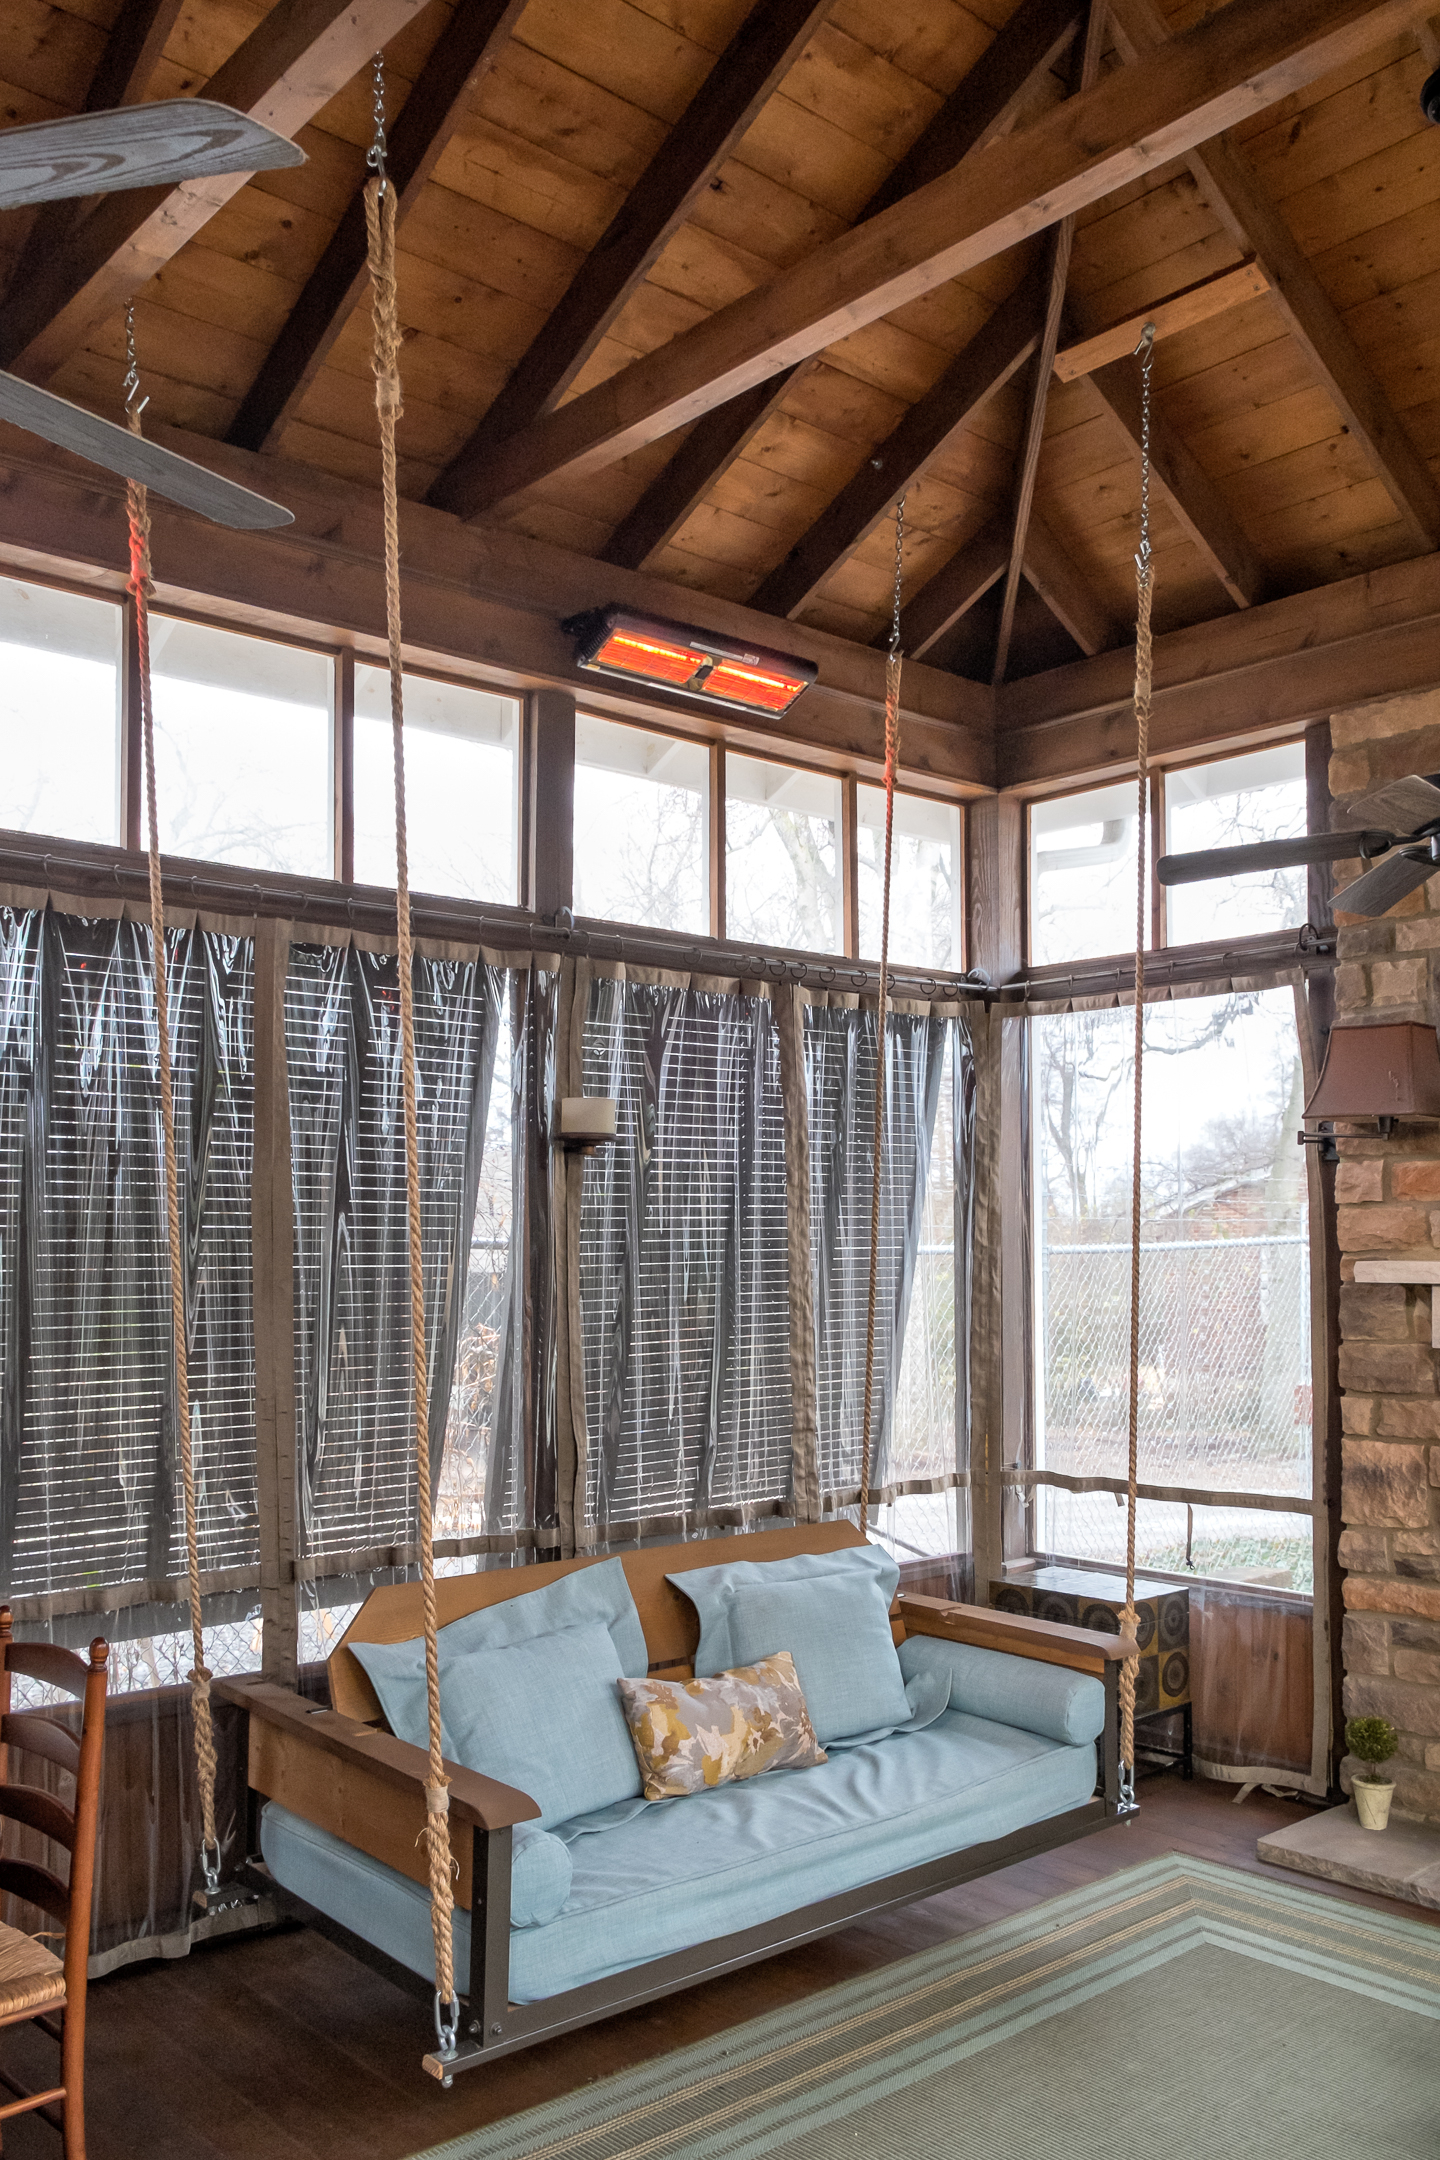 Swing Bed Hanging Rope – The Porch Company In Most Recently Released Hanging Daybed Rope Porch Swings (View 27 of 30)